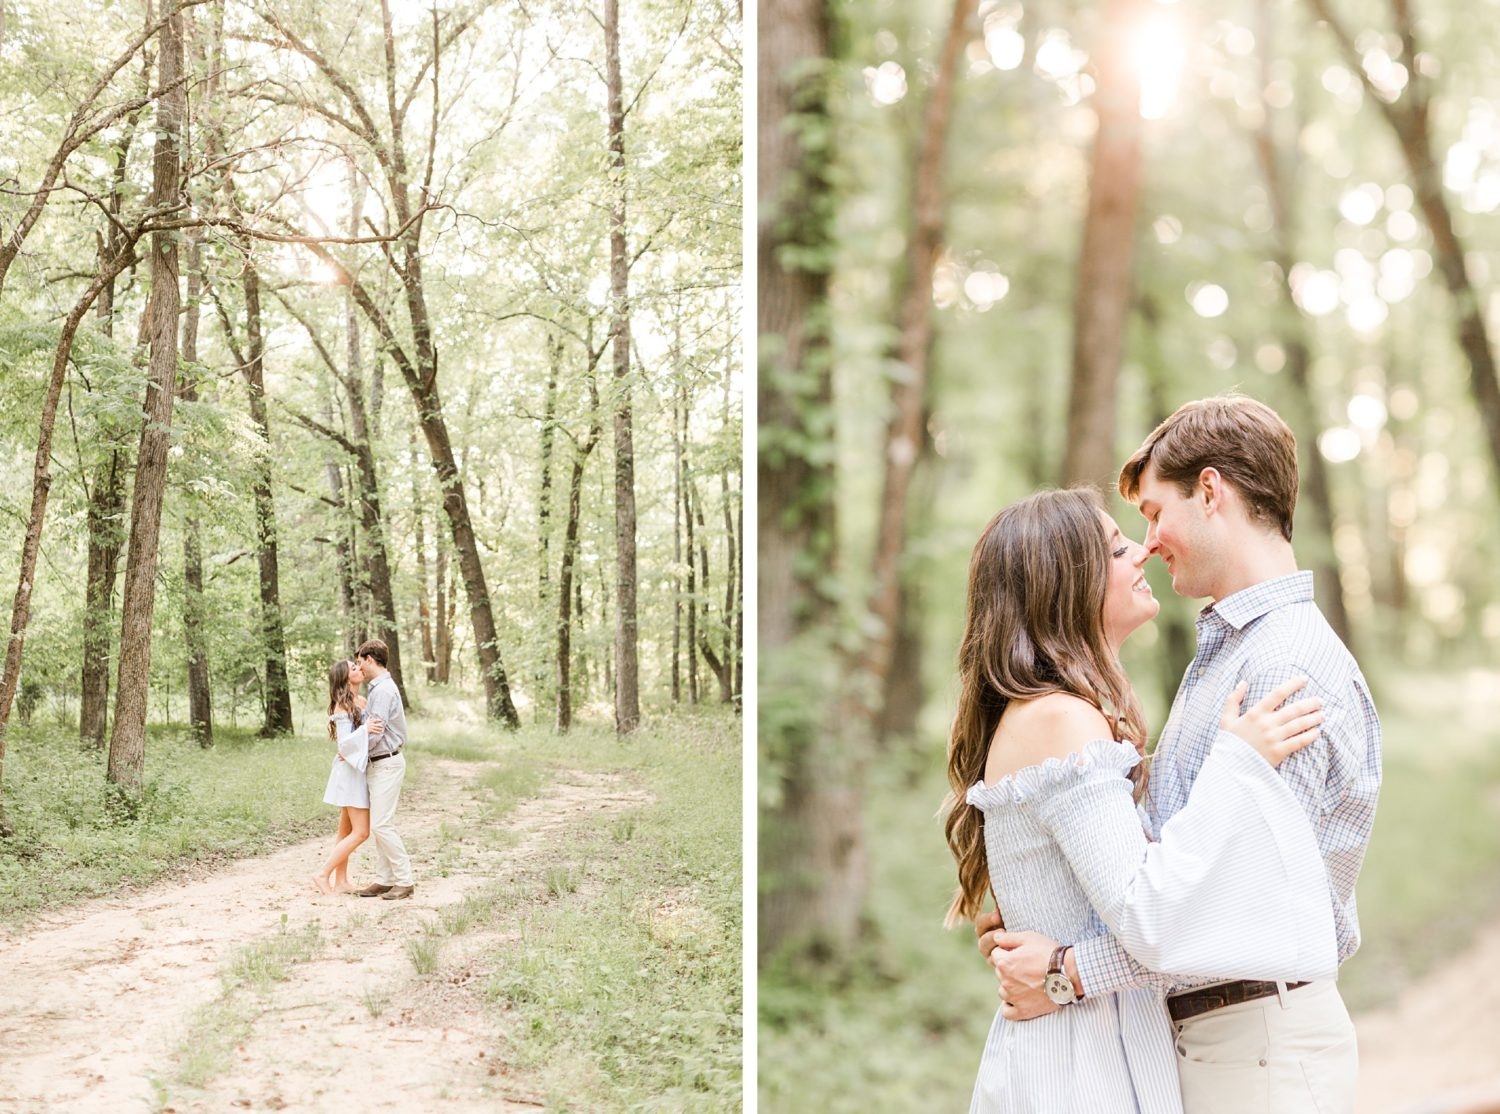 http://amy-hutchinson.com/wp-content/uploads/2018/05/ahp-summer-tennessee-farm-engagement_0007.jpg